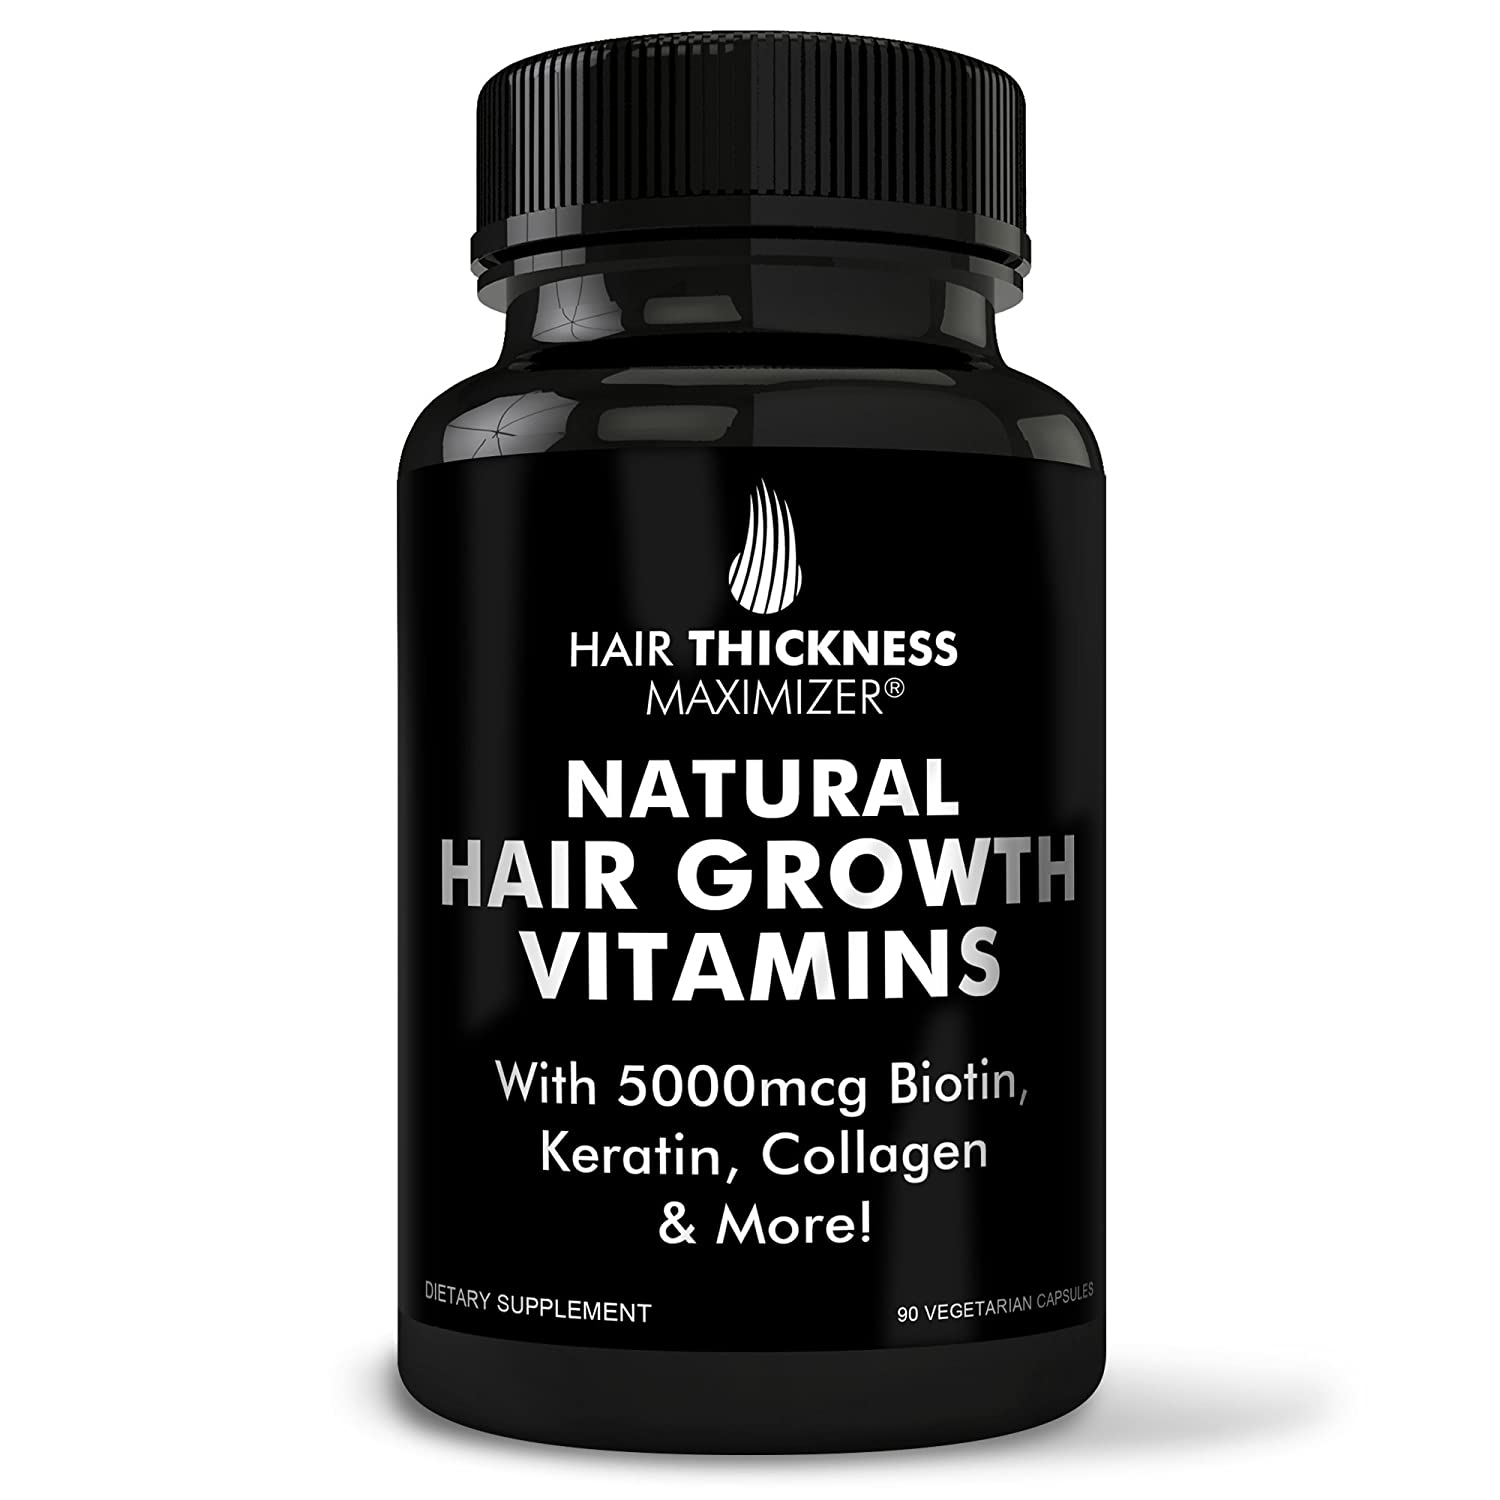 BEST Hair Growth Vitamins GUARANTEED. Stop Hair Loss NOW by Hair Thickness Maximizer. Natural Hair Growth Vitamins for Stronger, Thicker Hair. MADE IN USA. SAFE Vegetarian | With Biotin, Horsetail Ext